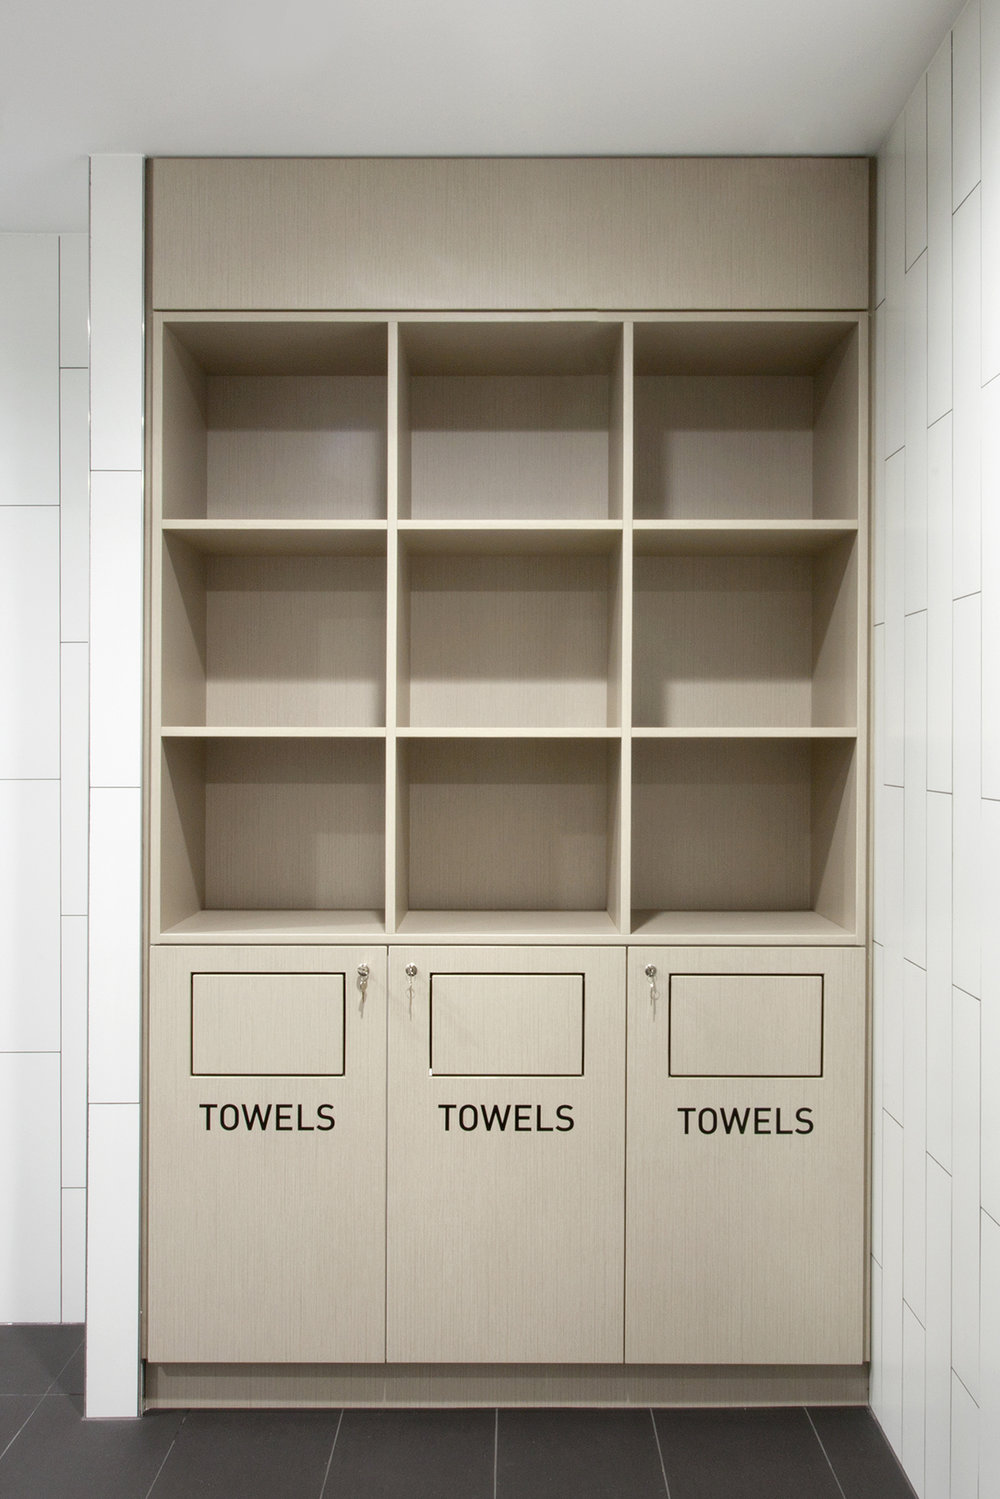 lockin-lockers-dean-st-custom-towel-joinery.jpg